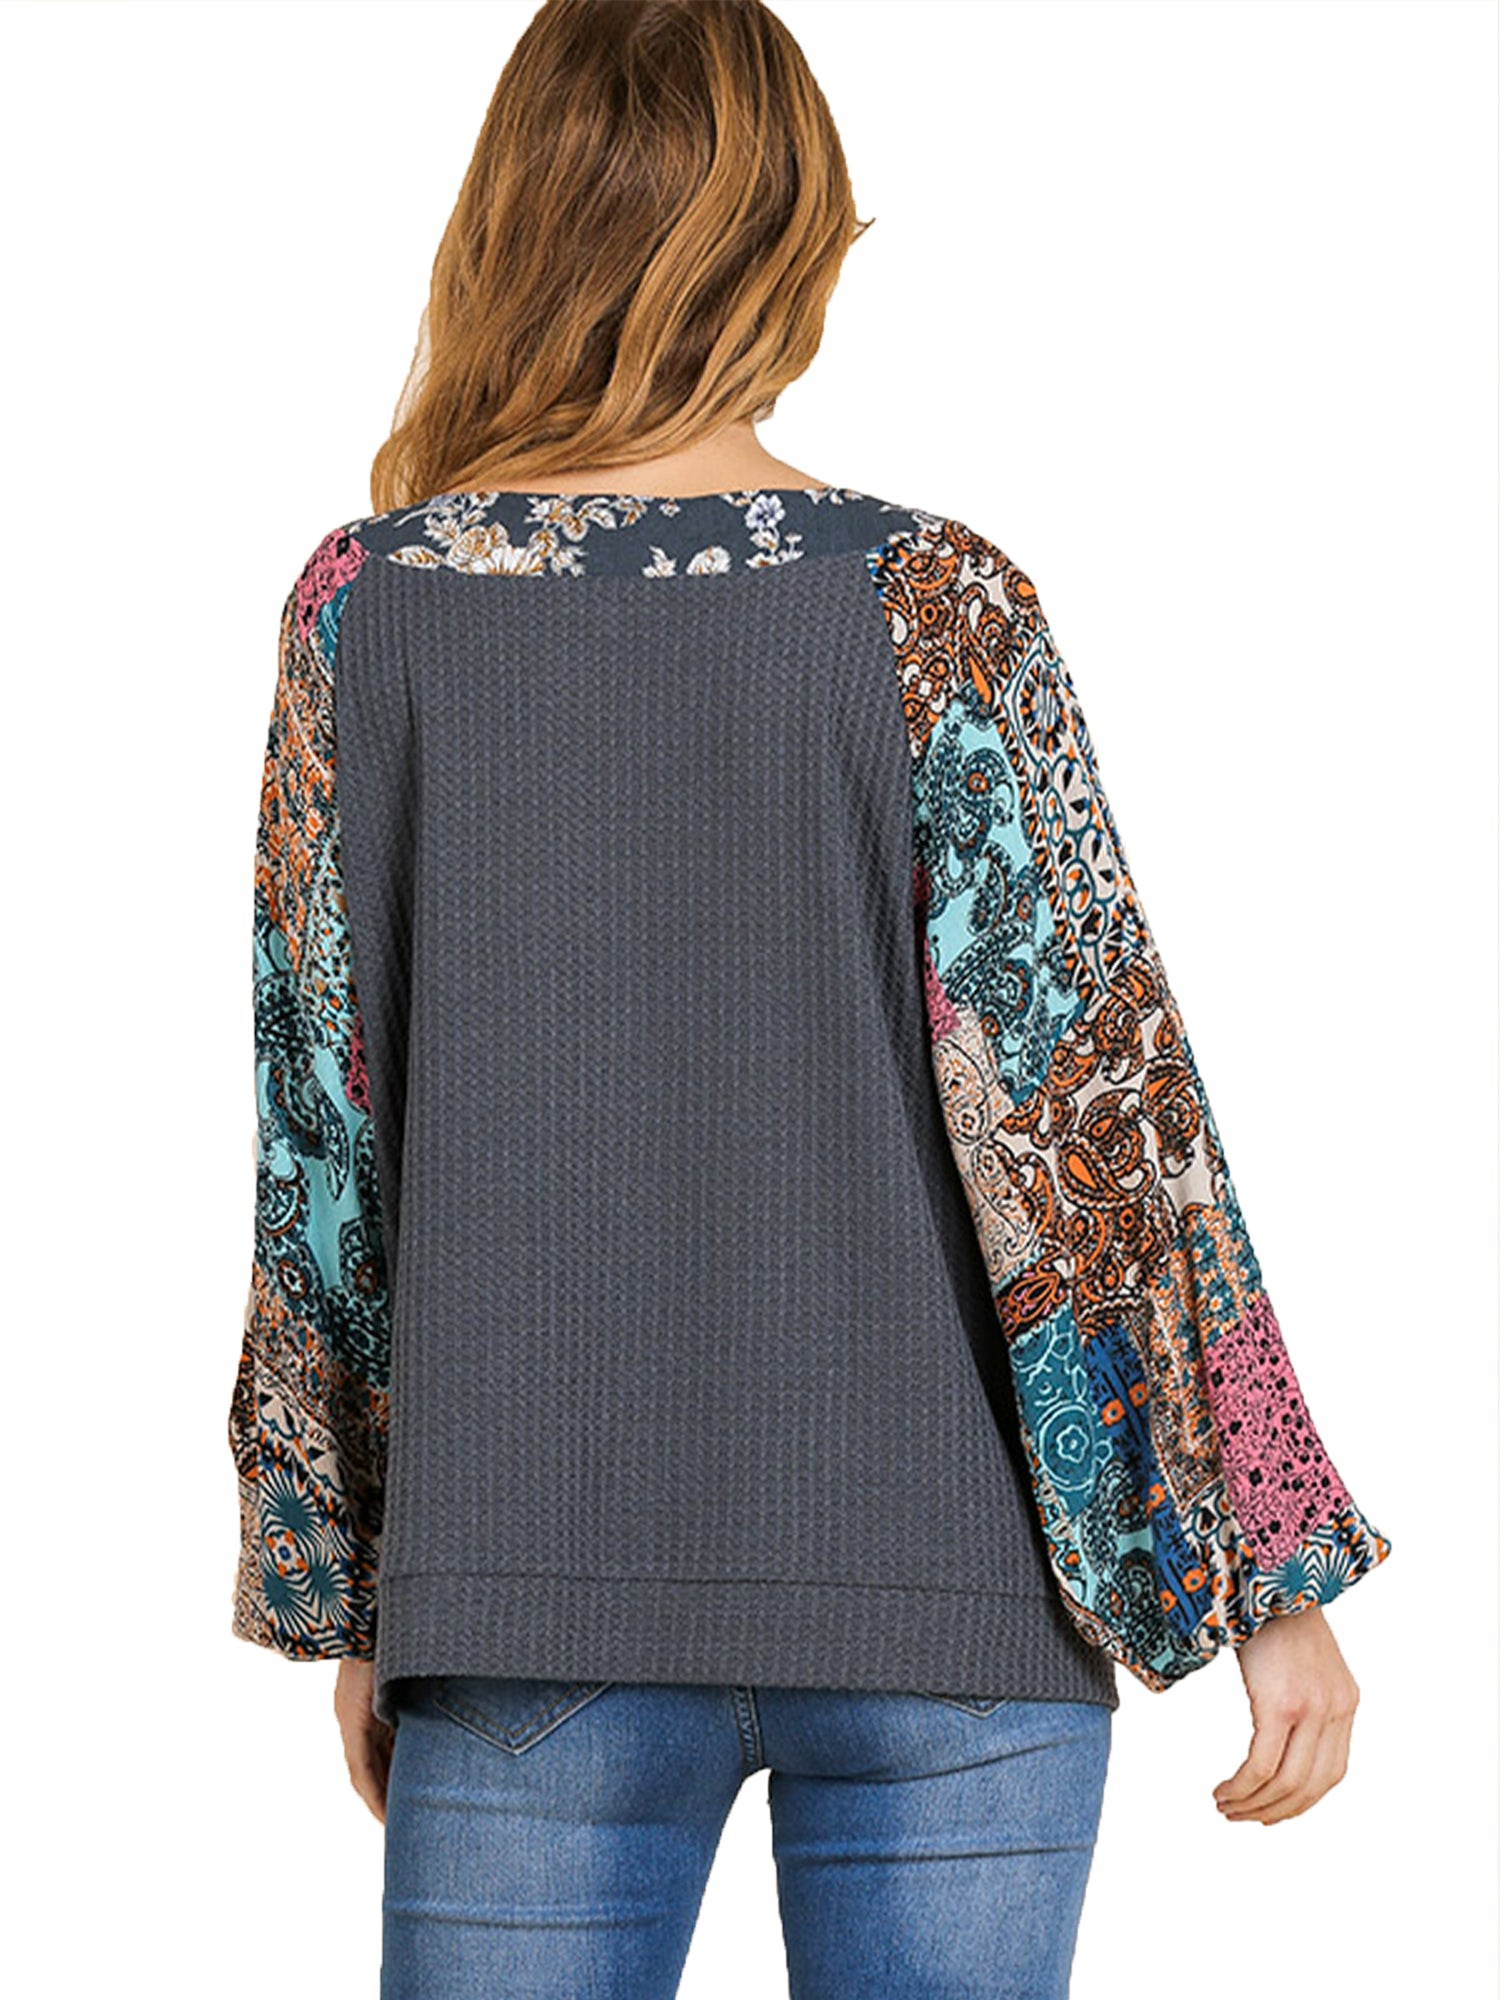 Umgee Women's Charcoal Waffle Knit Top with Floral Print Puff Sleeves